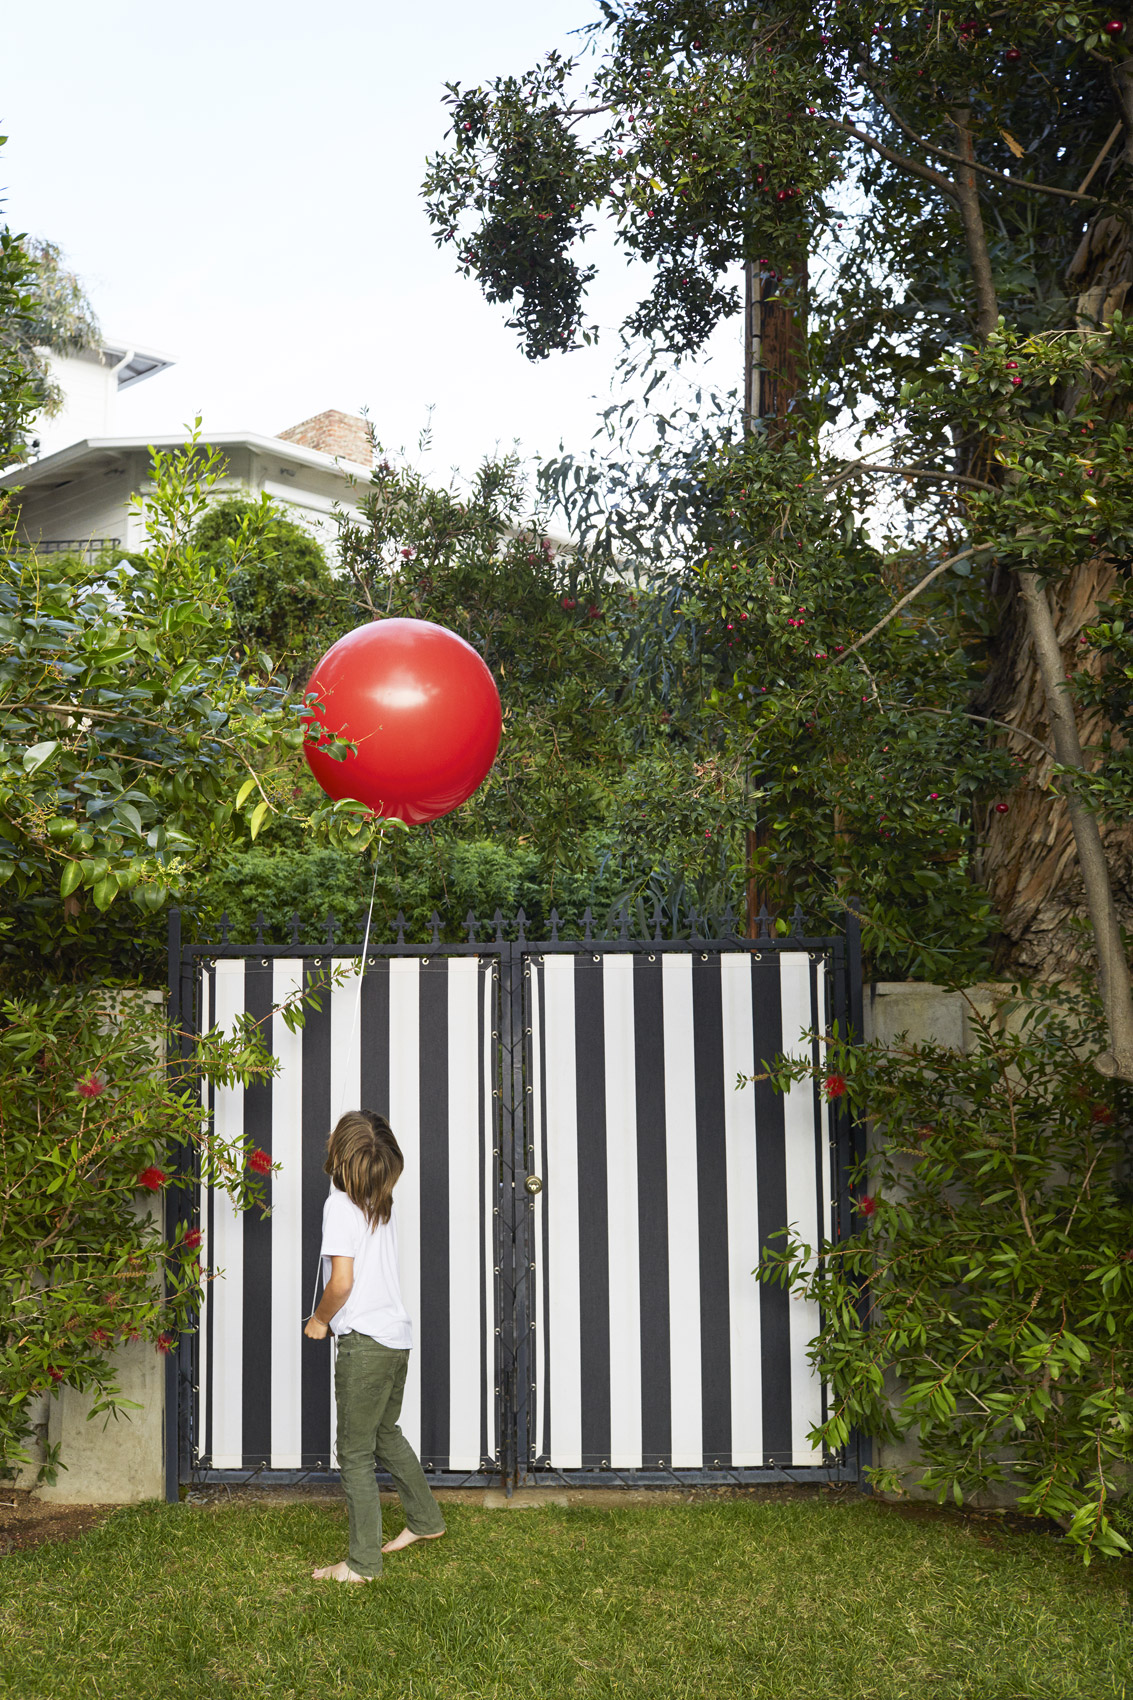 Kid in a backyard holding a big red balloon - Kim Genevieve Los Angeles Lifestyle Photographer